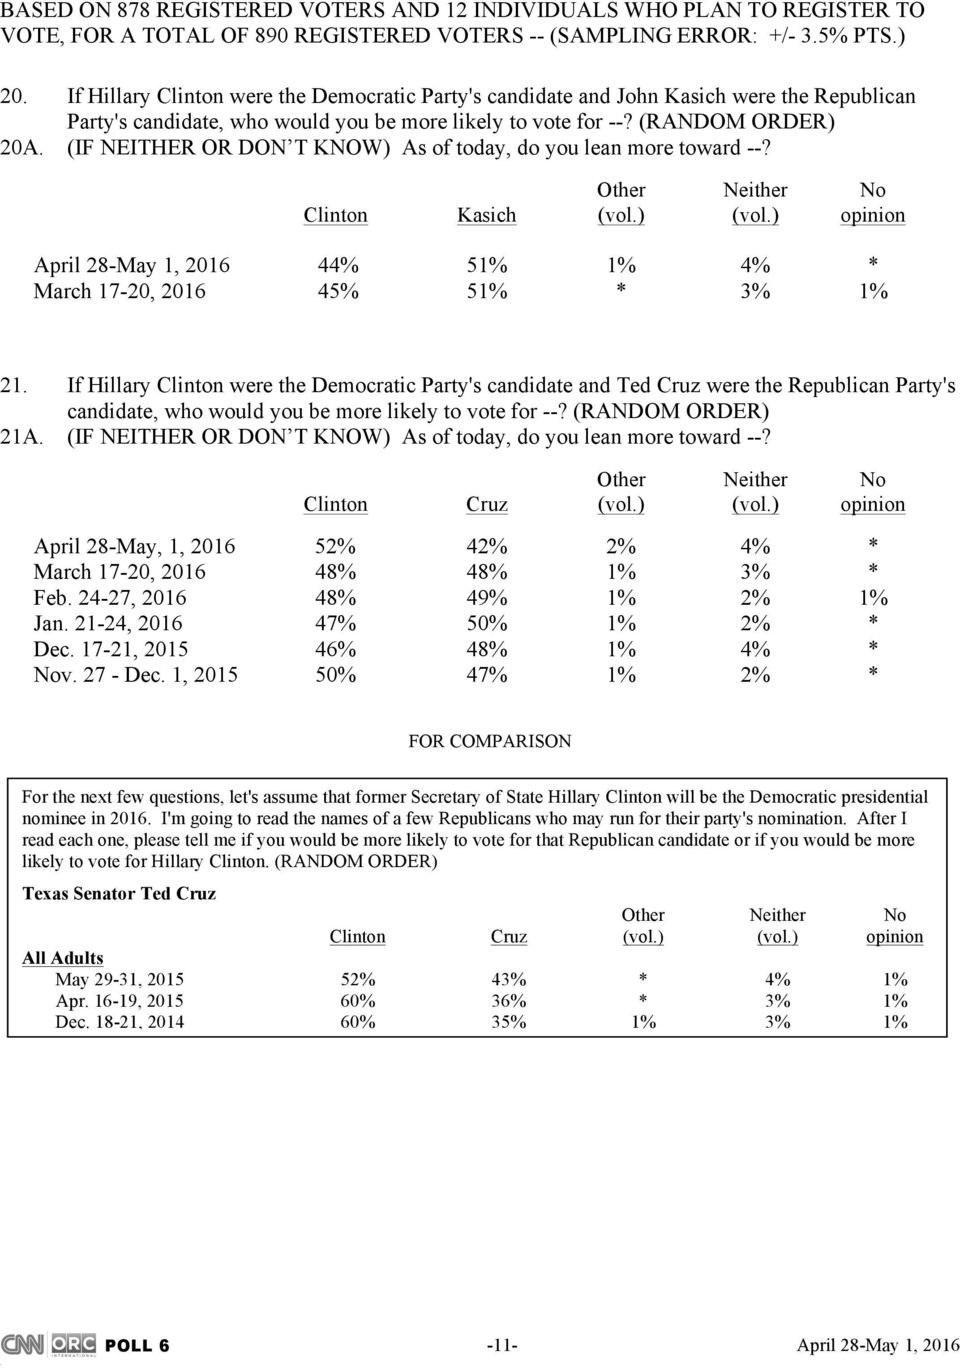 (IF NEITHER OR DON T KNOW) As of today, do you lean more toward --? Other Neither No Clinton Kasich (vol.) (vol.) opinion April 28-May 1, 2016 44% 51% 1% 4% * March 17-20, 2016 45% 51% * 3% 1% 21.